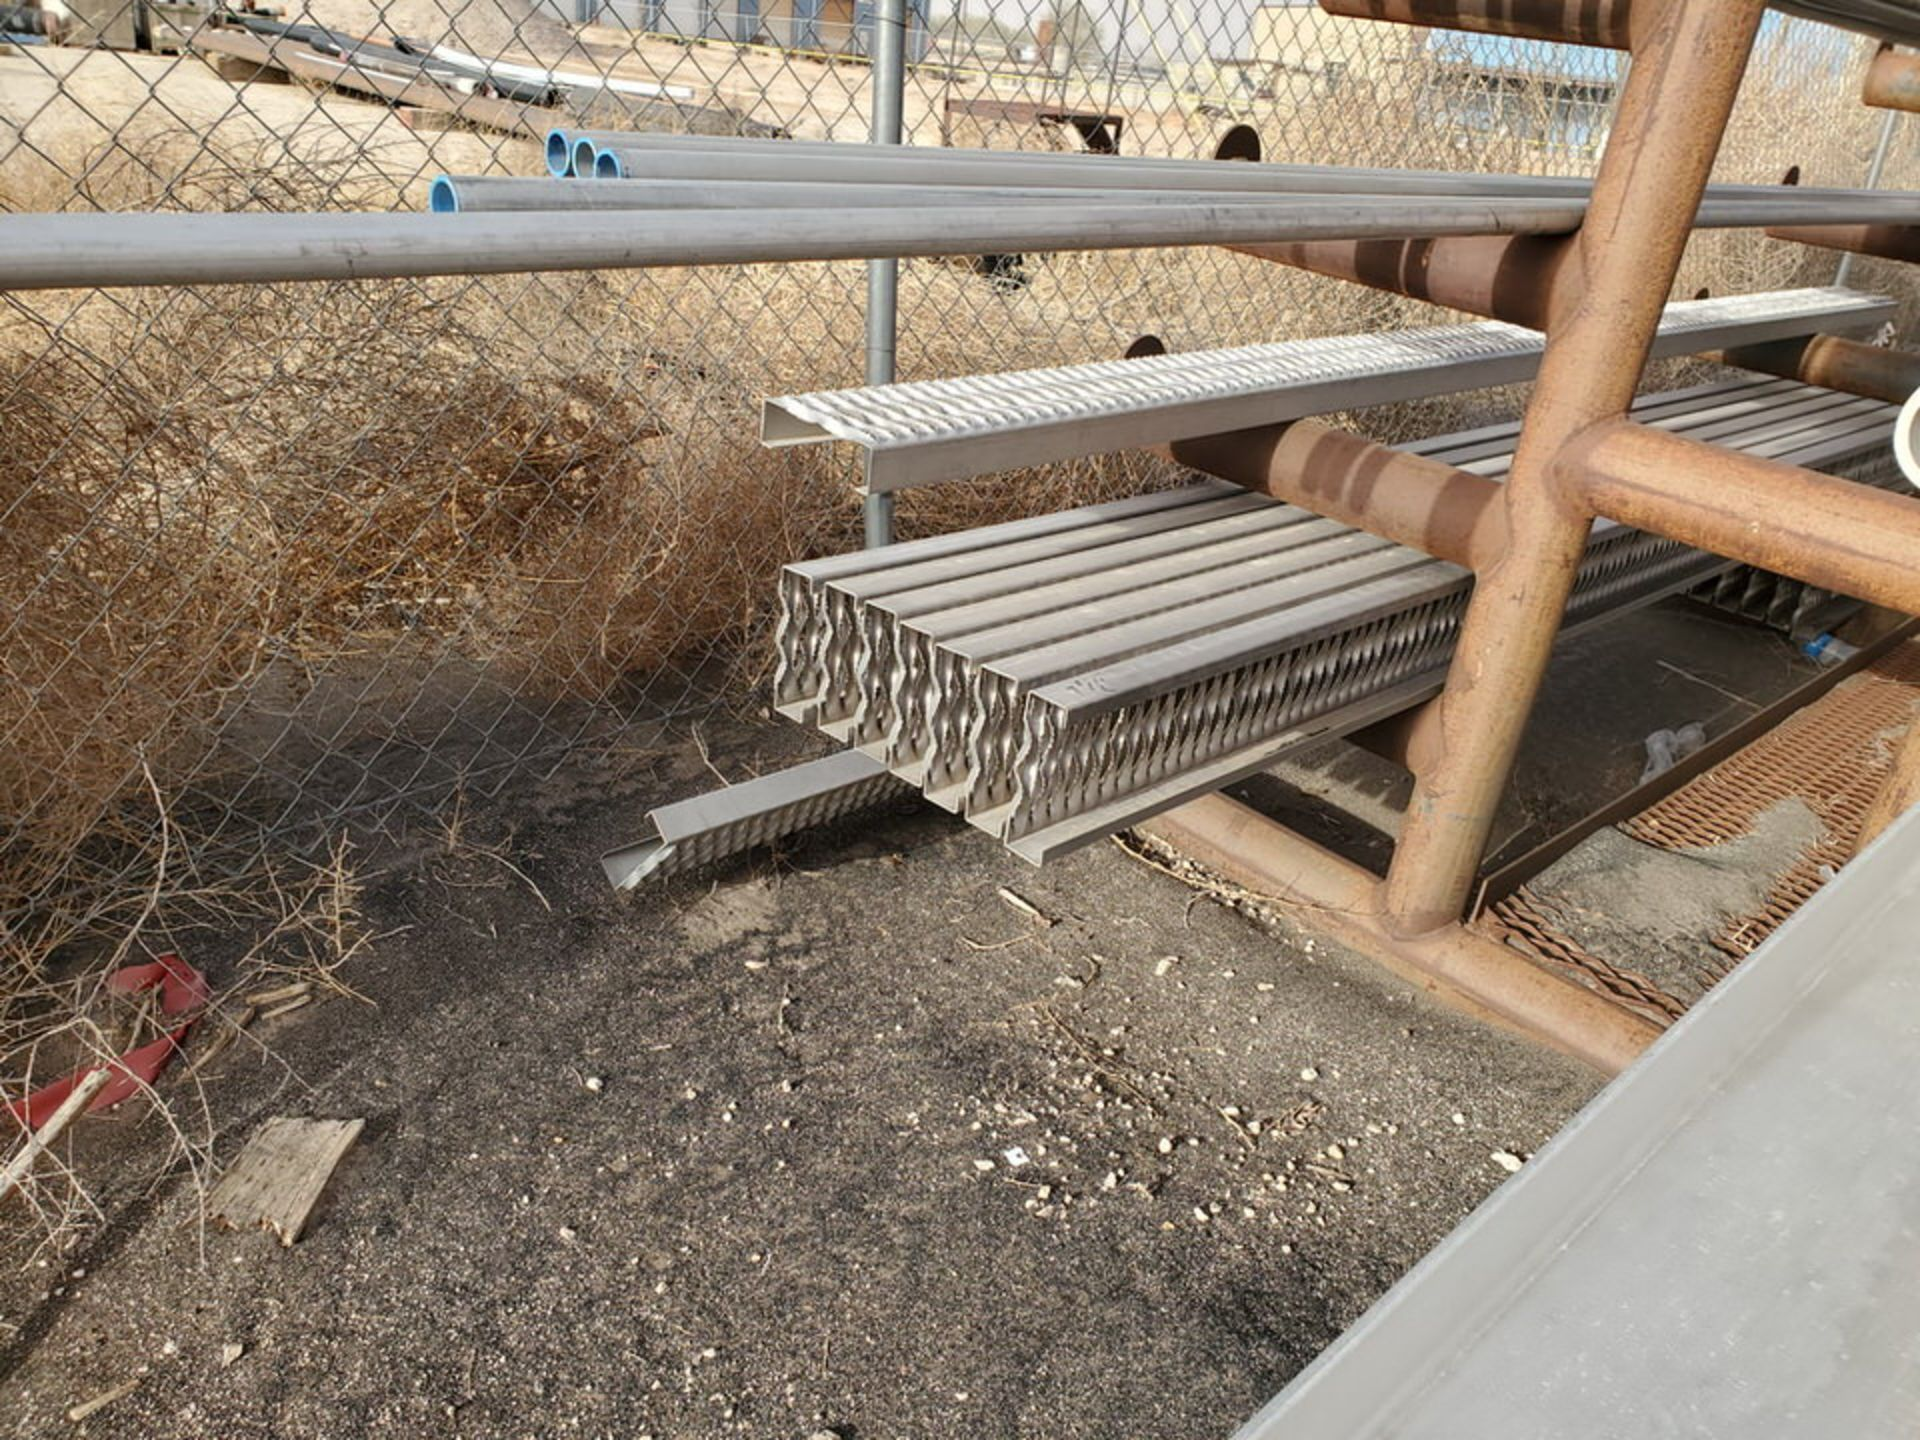 Assorted Matl. To Include But Limited To: S/S Channel, Pipe, Angle, Tubing, Rods, etc.(Rack - Image 6 of 19